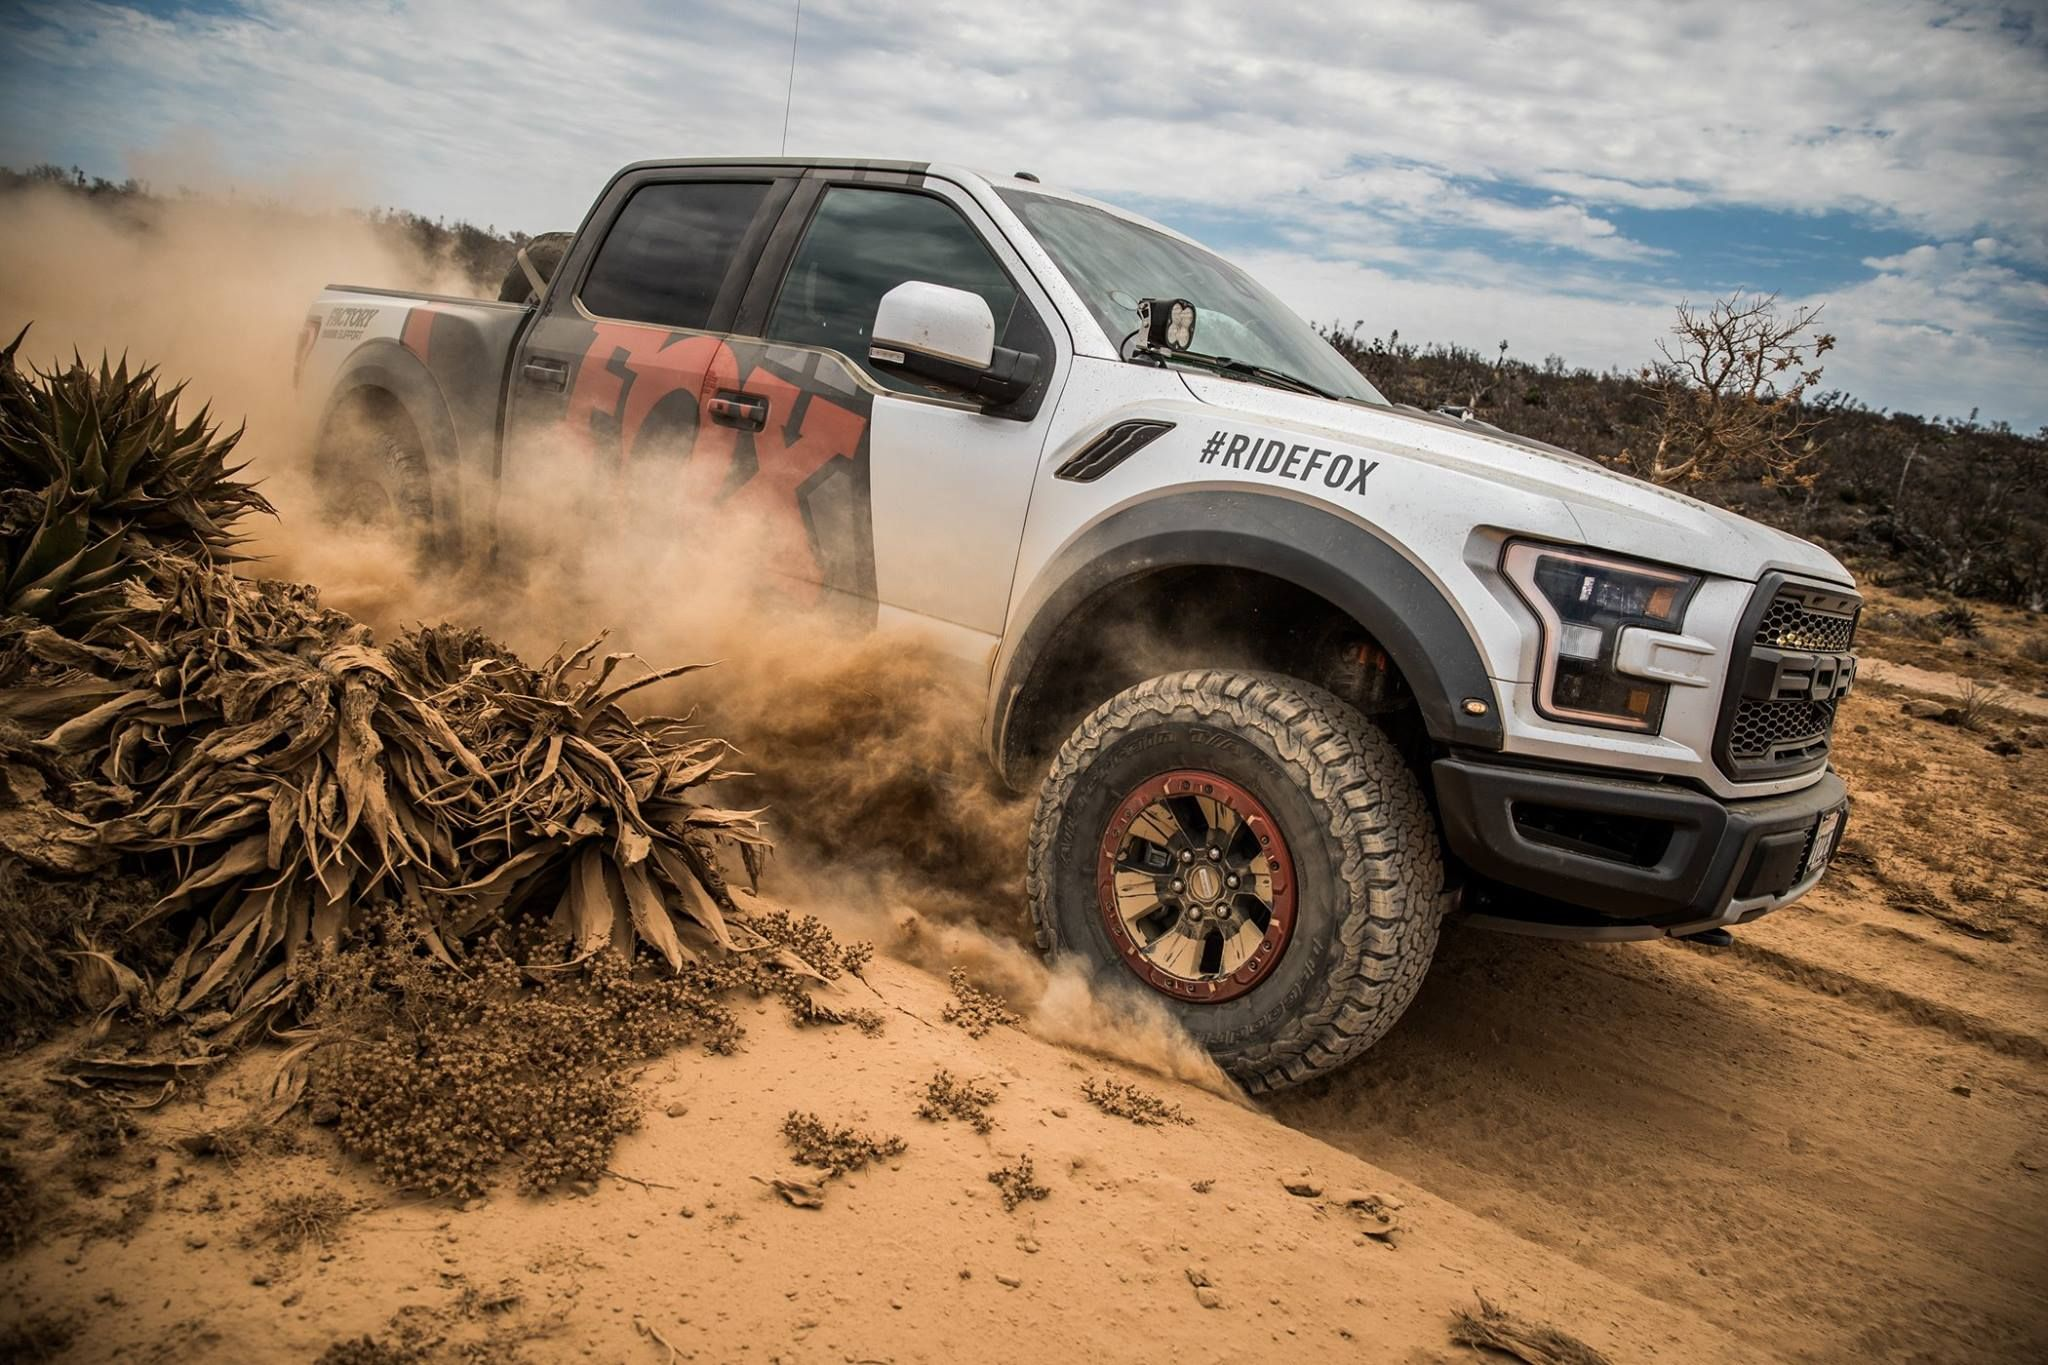 Fox's 2017 Ford Raptor tearing it up in Baja for the Trail